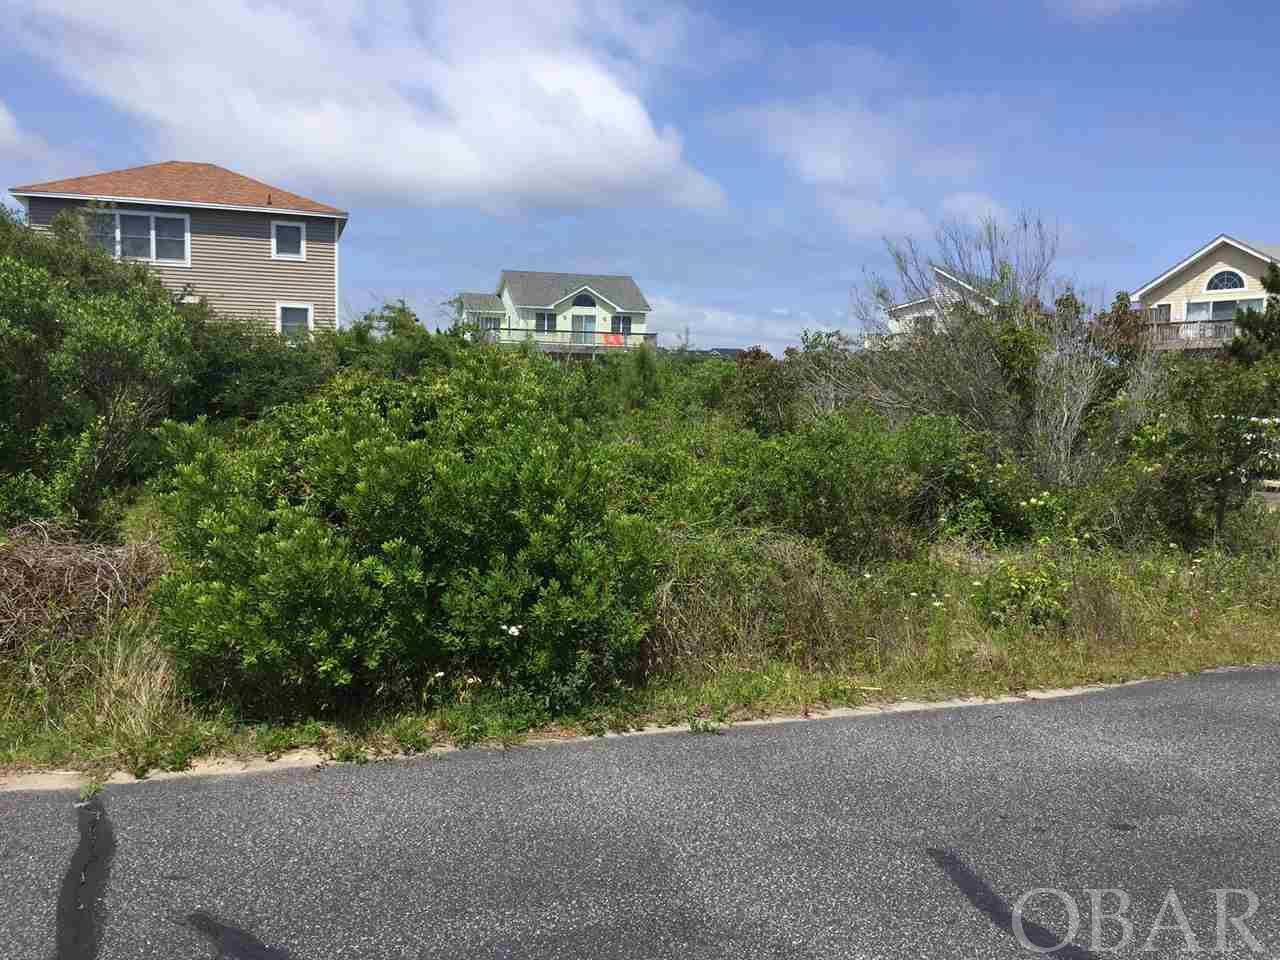 630 Surf Song Court,Corolla,NC 27927,Lots/land,Surf Song Court,88389